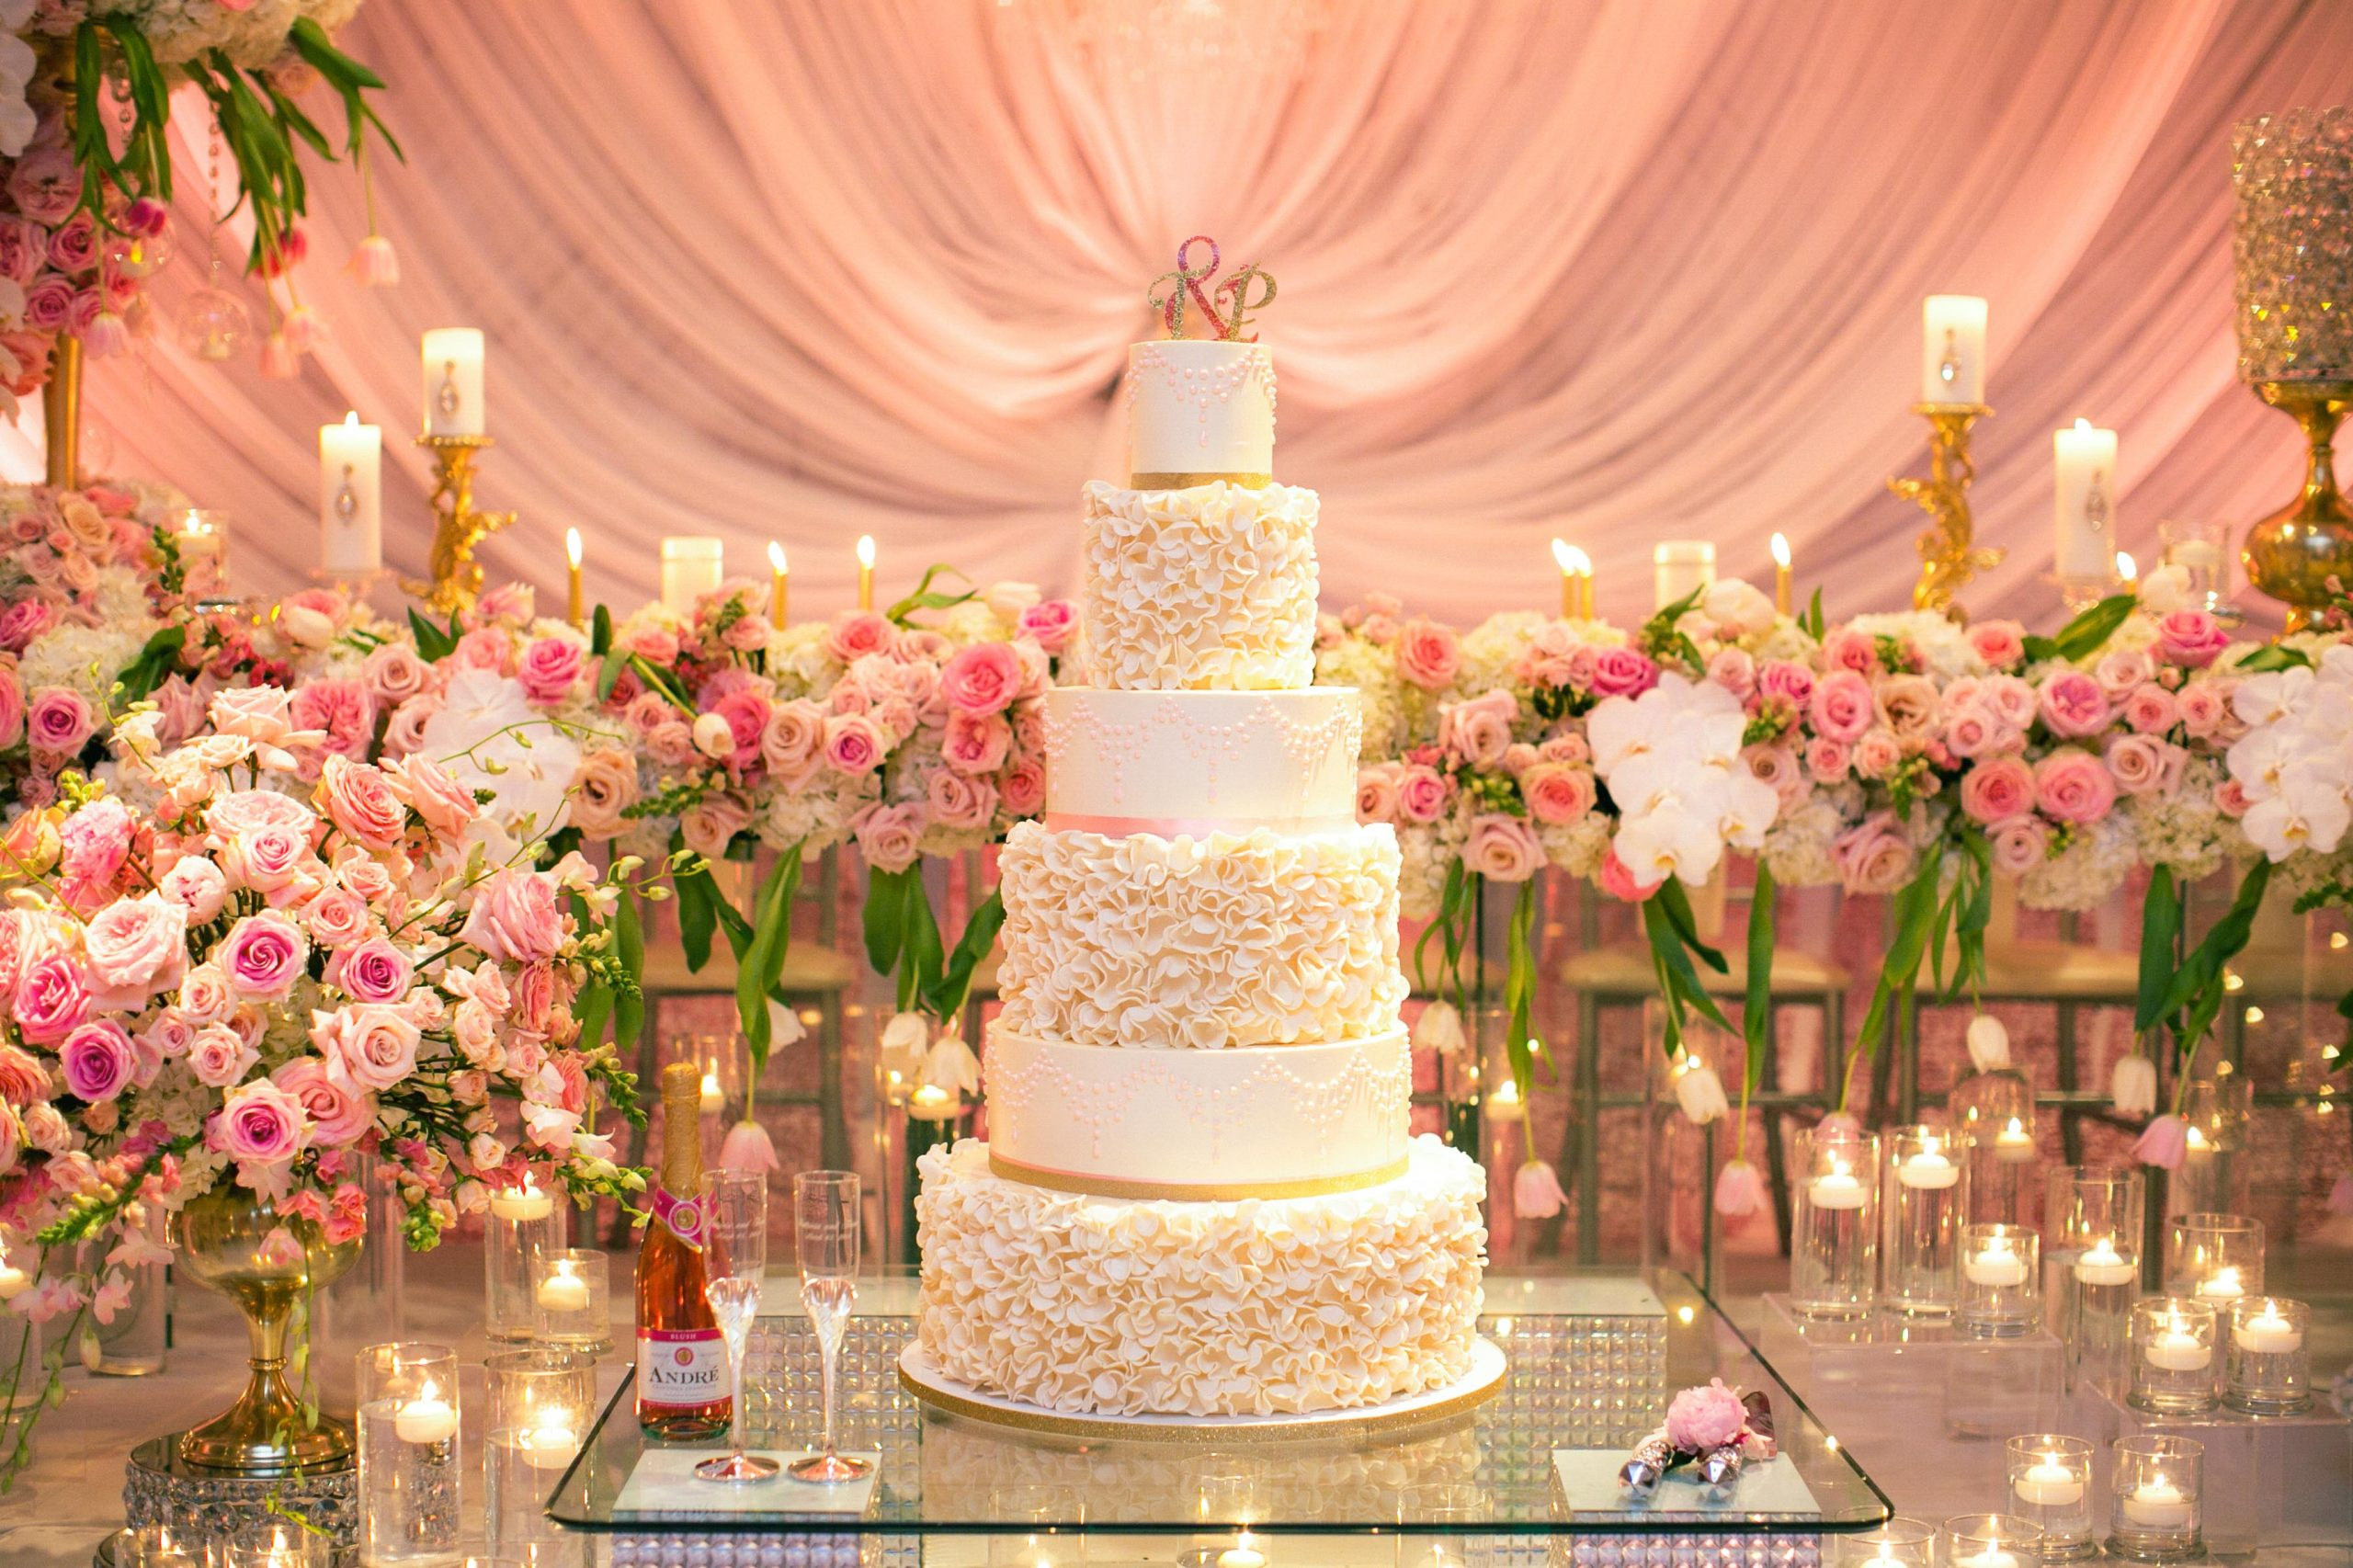 Check out this wedding blog featuring ideas that are slightly over-the-top but absolutely beautiful for weddings!